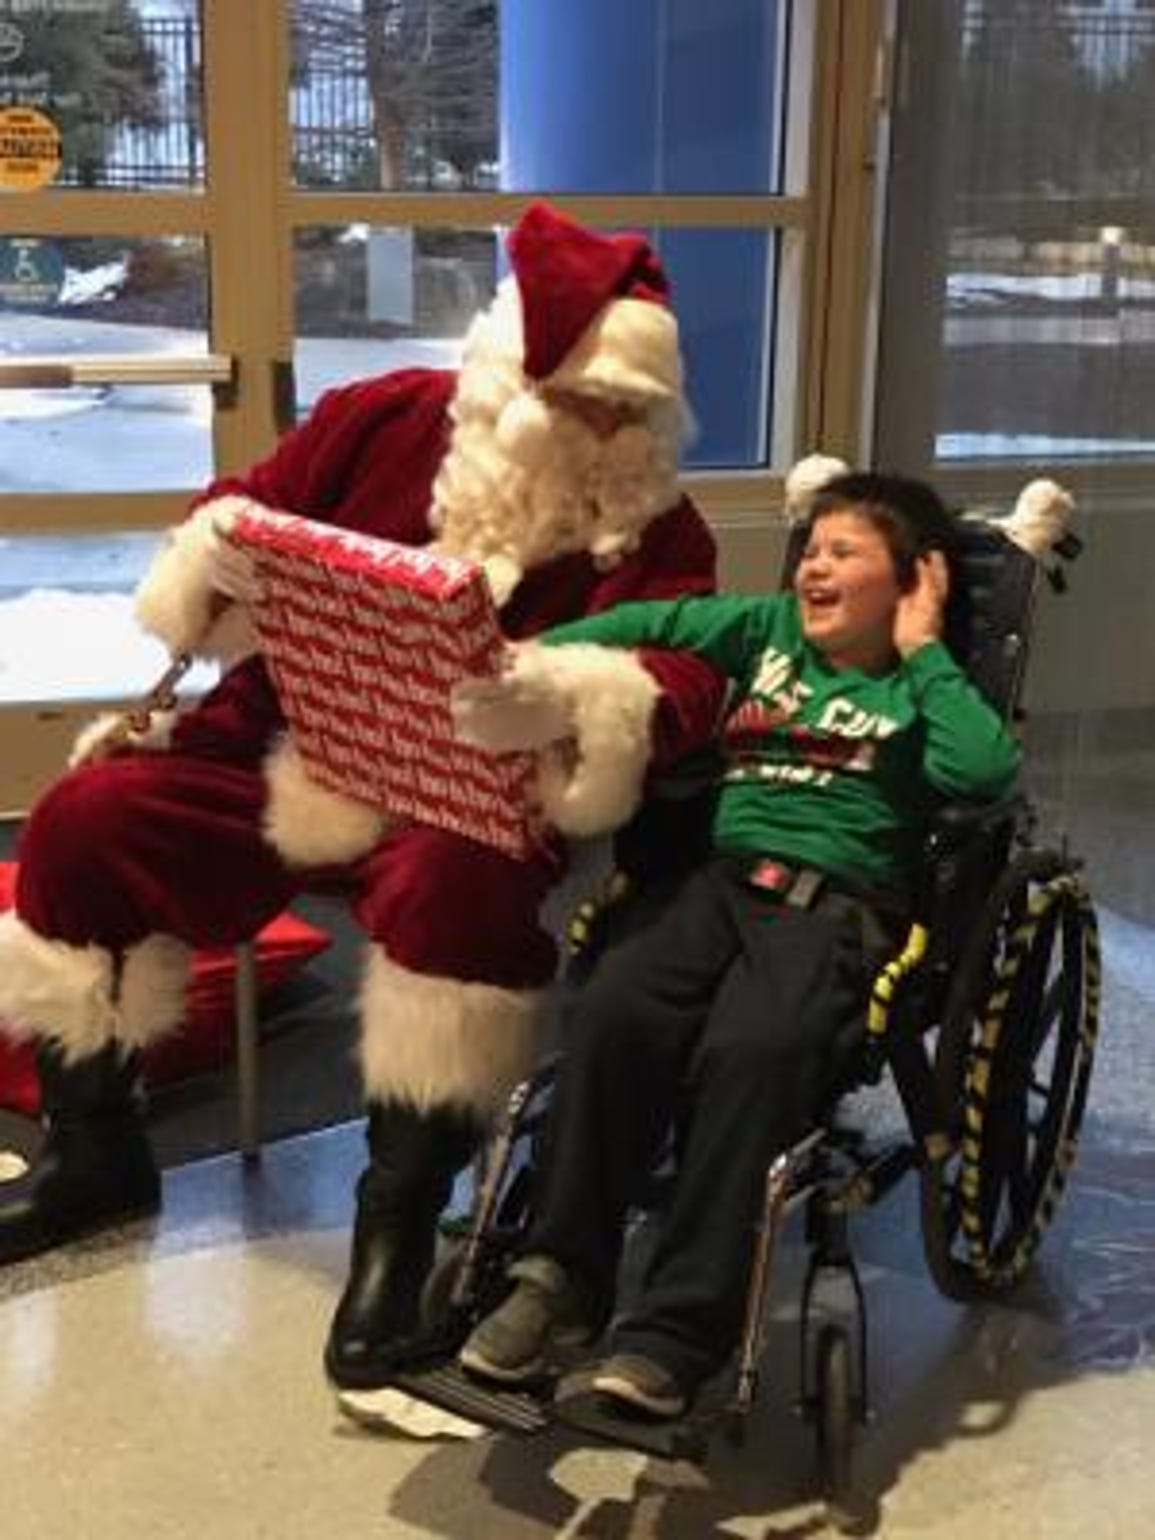 Aiden Busch, 7, got a visit from Santa (actually his